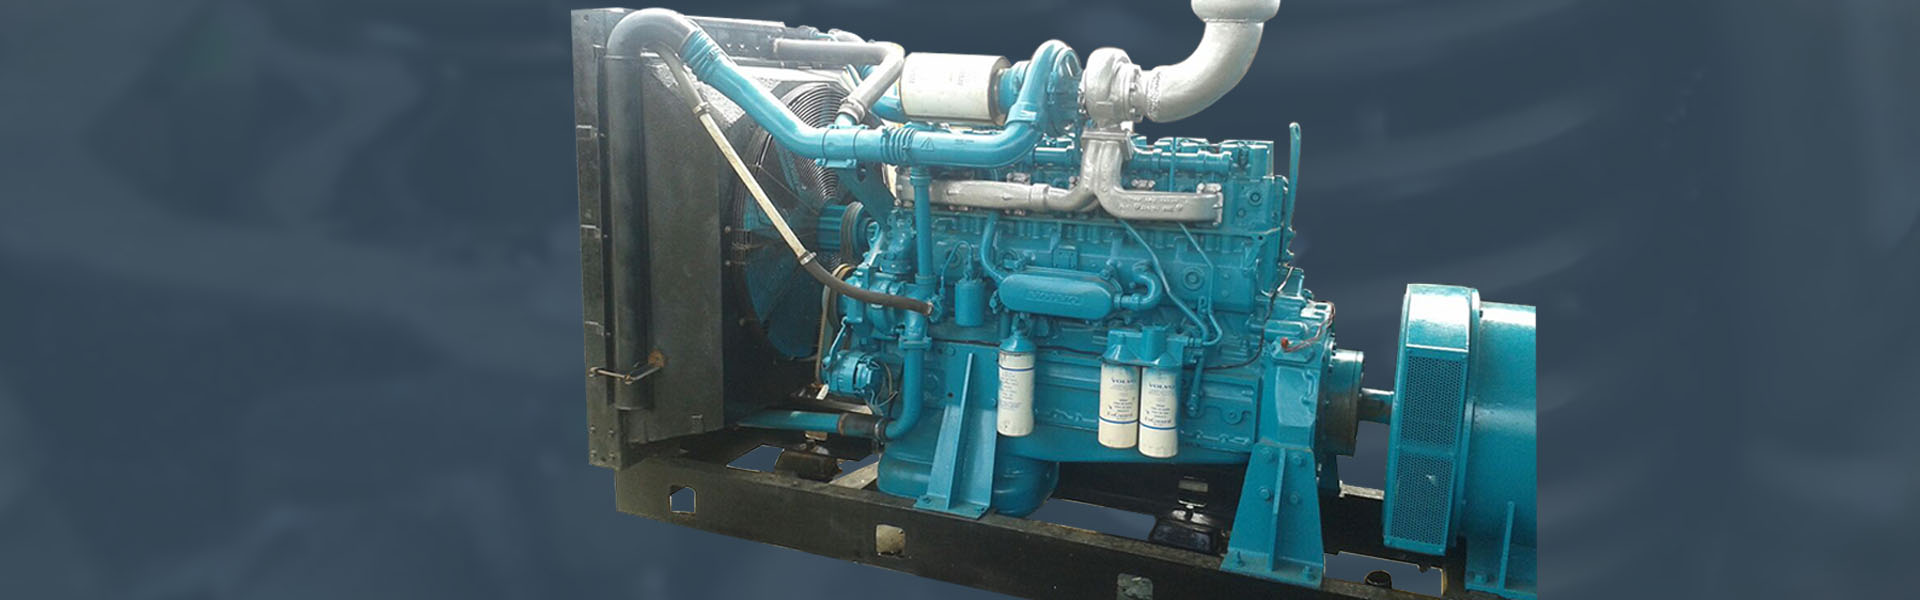 USED / REFURBISHED DIESEL GENERATORS